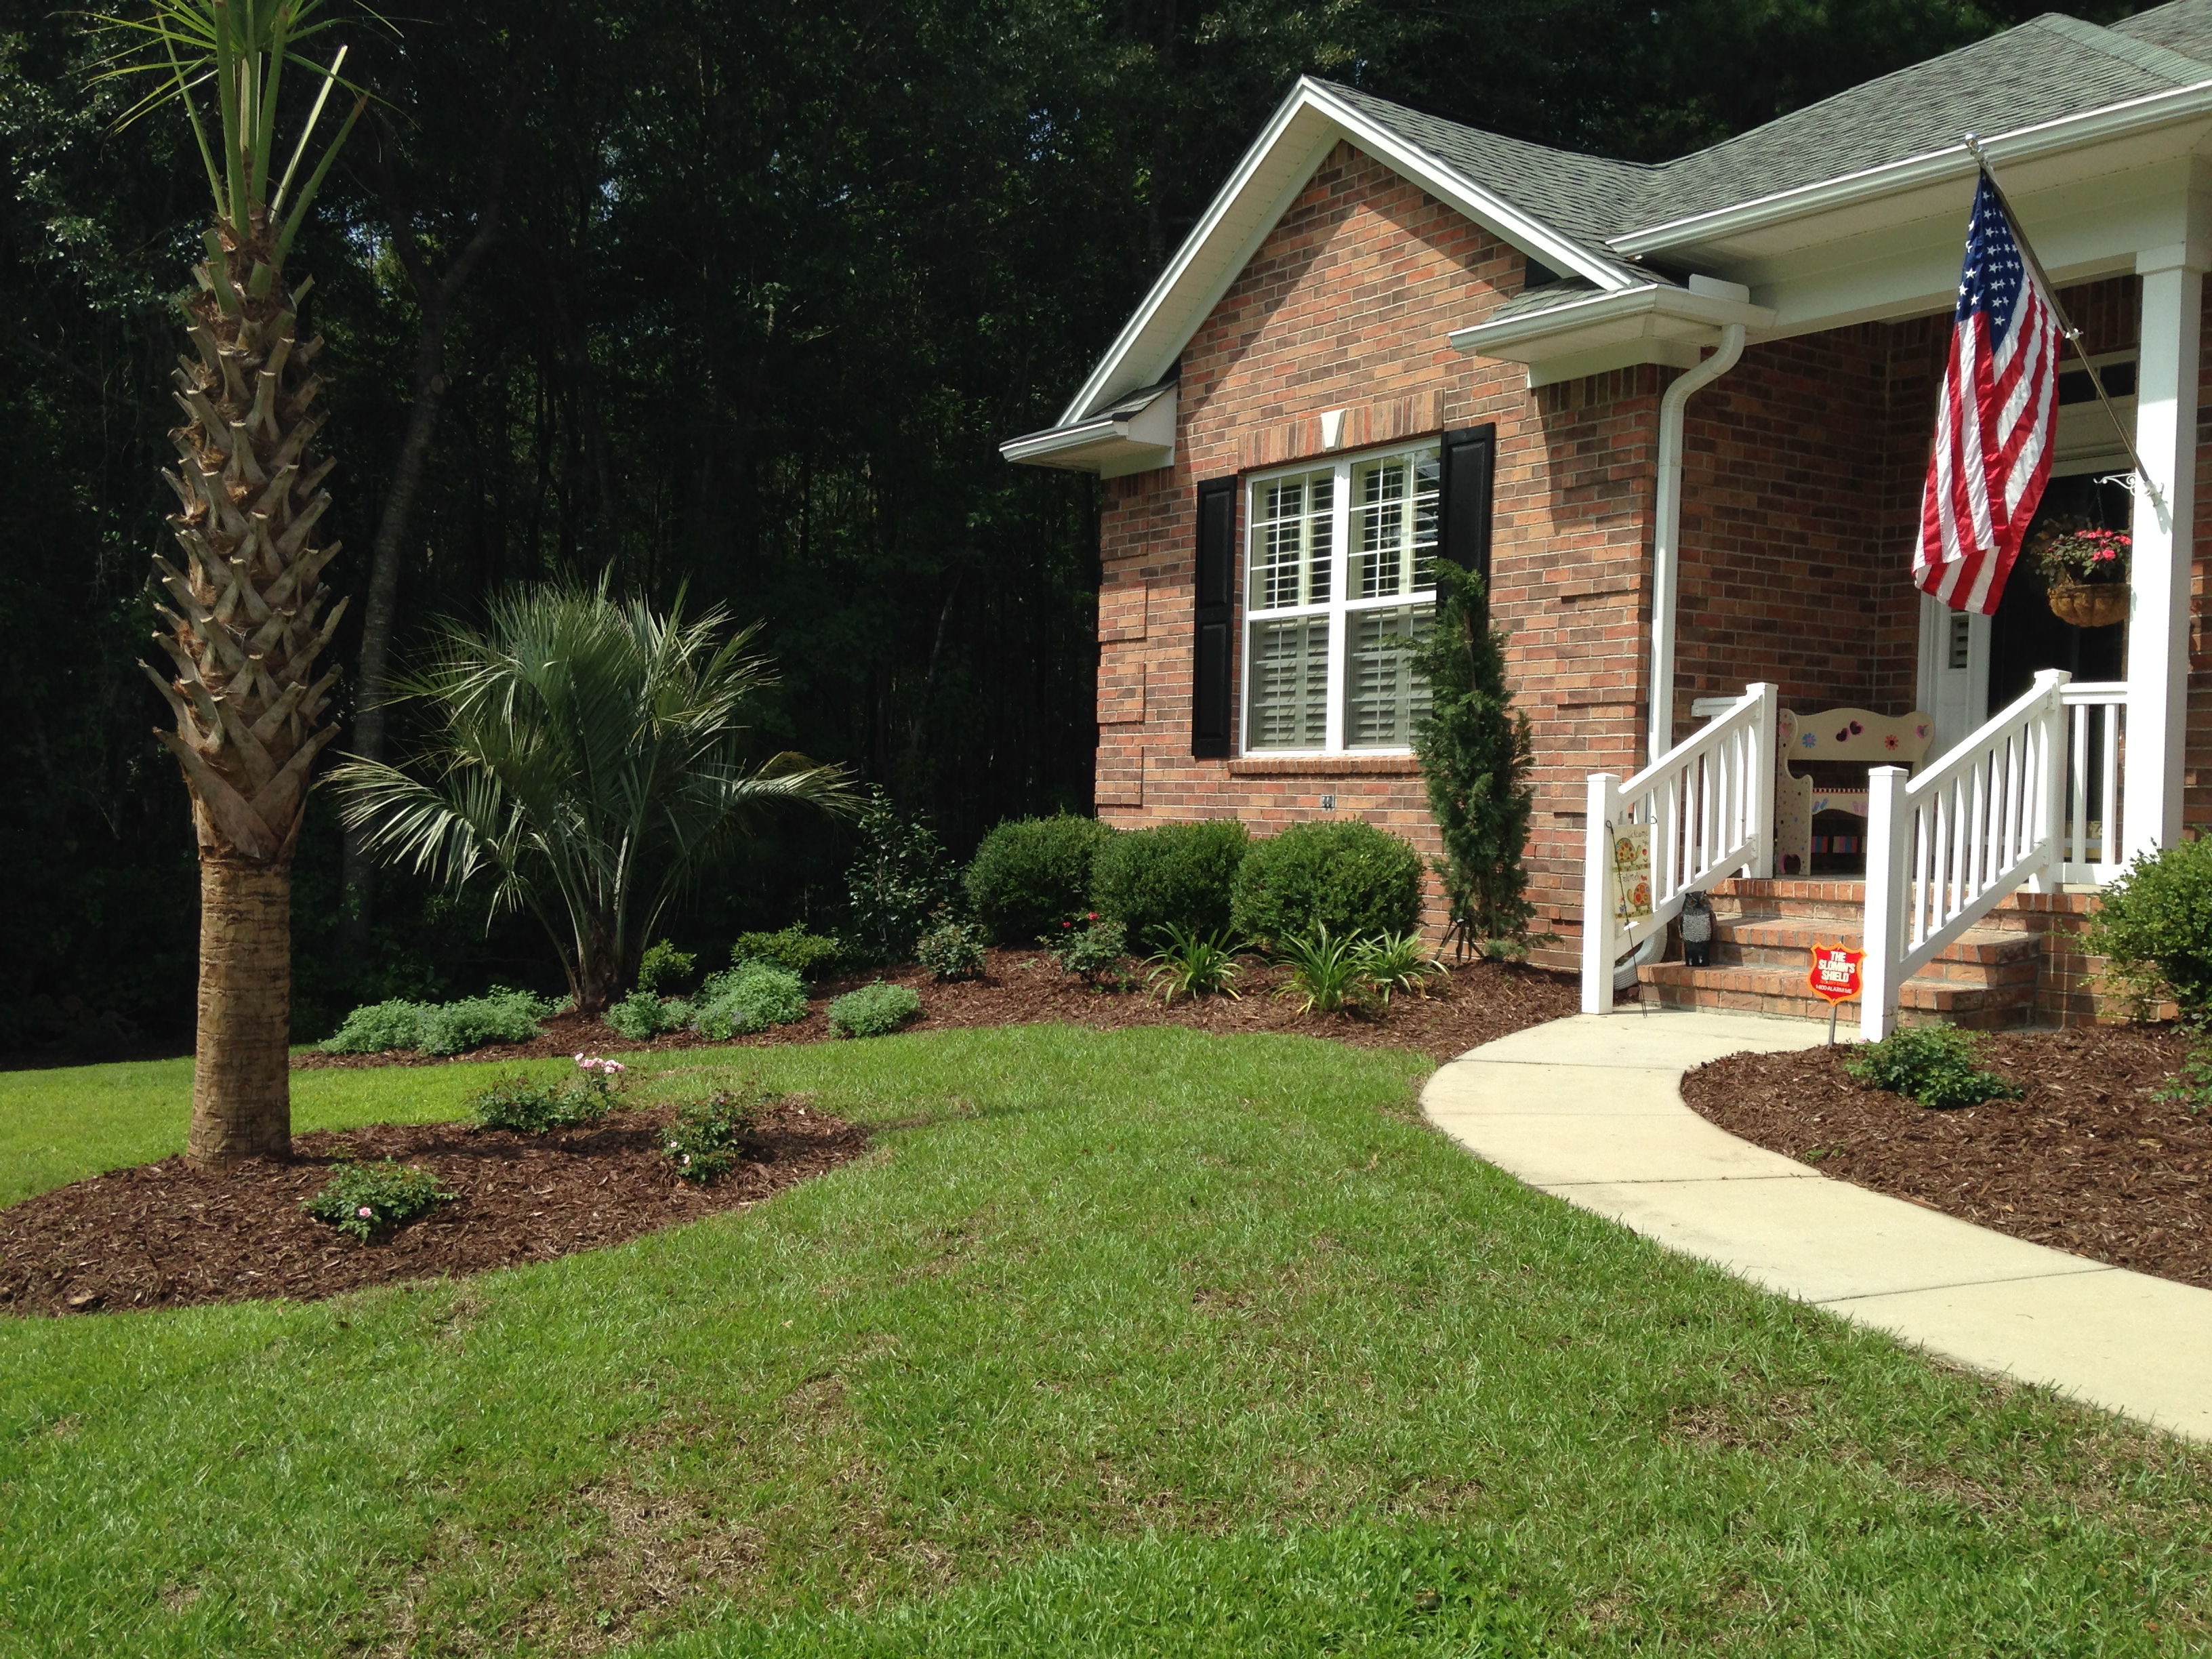 Landscaping Around Home Foundation : Beautiful landscaping for the myrtle beach and murrells inlet area